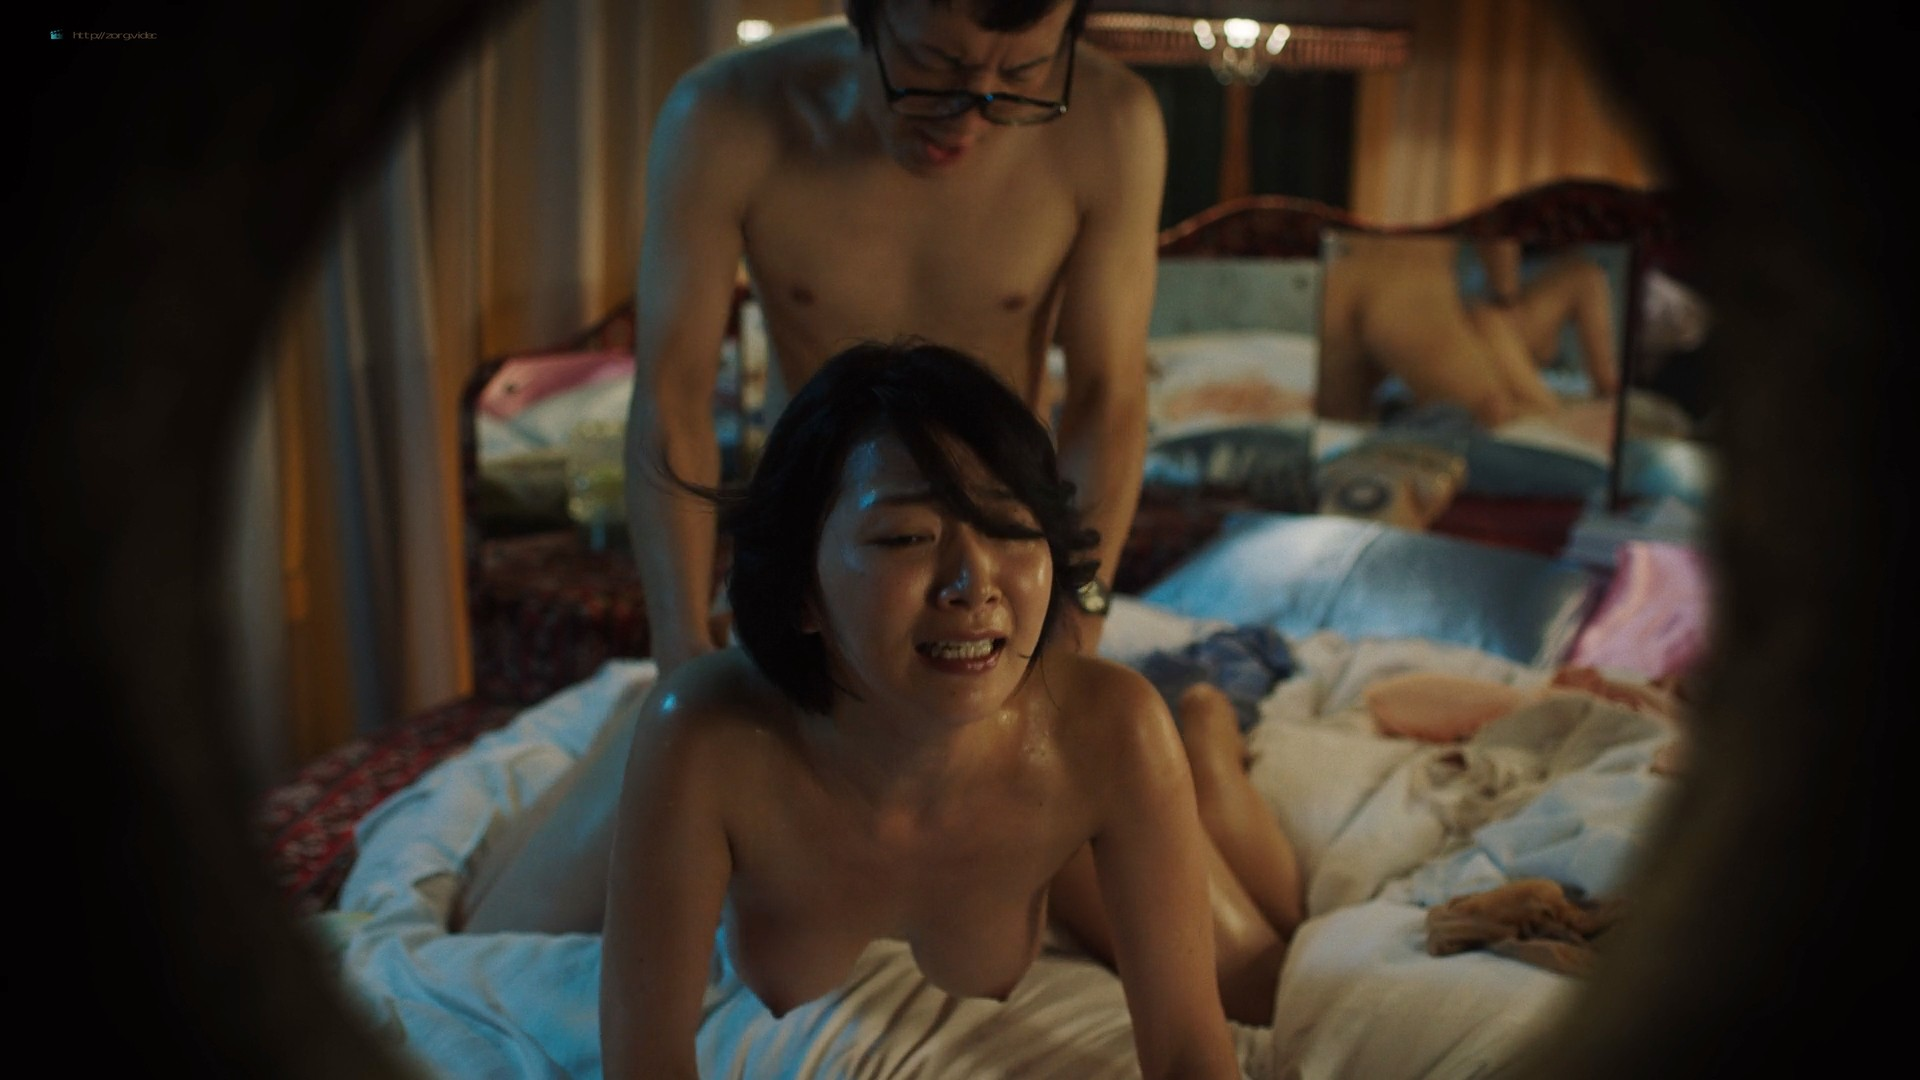 Ruri Shinato nude sex Umi Todo nude and hot sex - The Naked Director (2019) s1e1 HD 1080p Web (2)